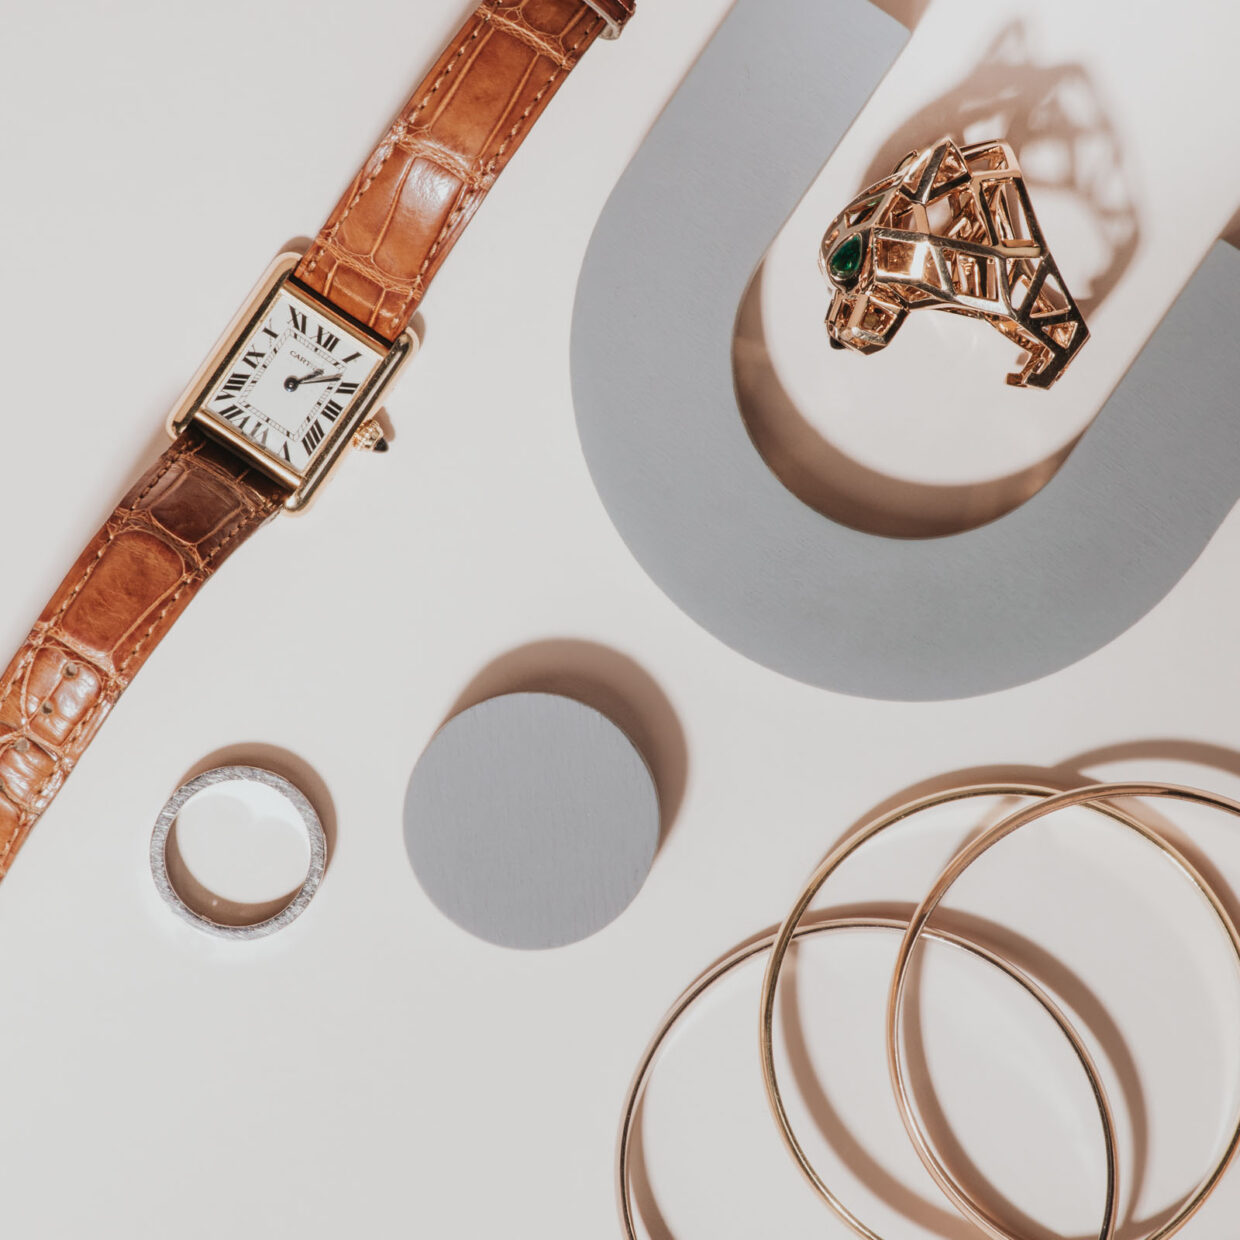 Simple gold bracelets. Birks diamond wedding band. Cartier leather classic watch. Cartier Gold Panther ring with emerald eyes. Professional and creative layflat jewelry photograph